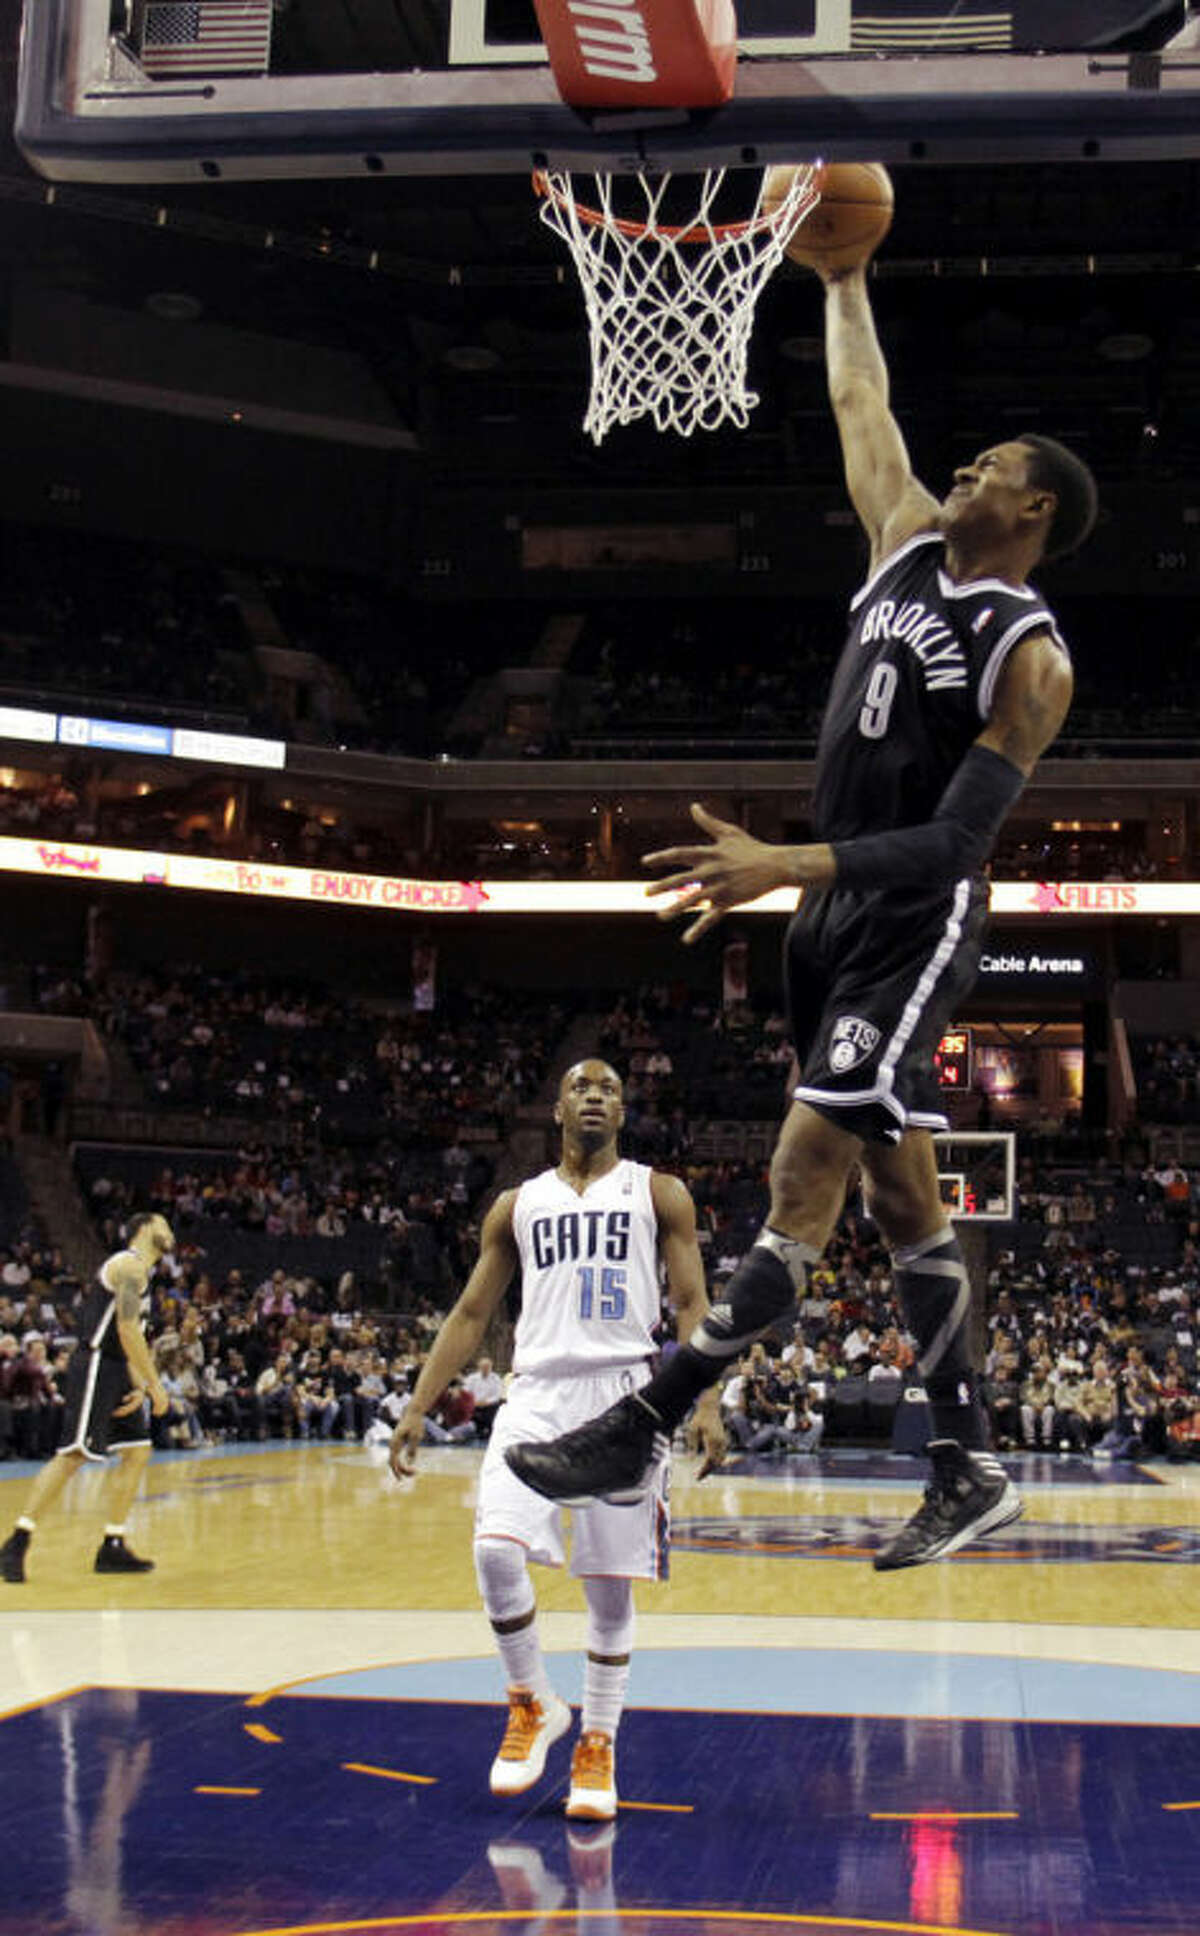 Brooklyn Nets' MarShon Brooks (9) dunks past Charlotte Bobcats' Kemba Walker (15) during the first half of an NBA basketball game in Charlotte, N.C., Wednesday, March 6, 2013. (AP Photo/Bob Leverone)